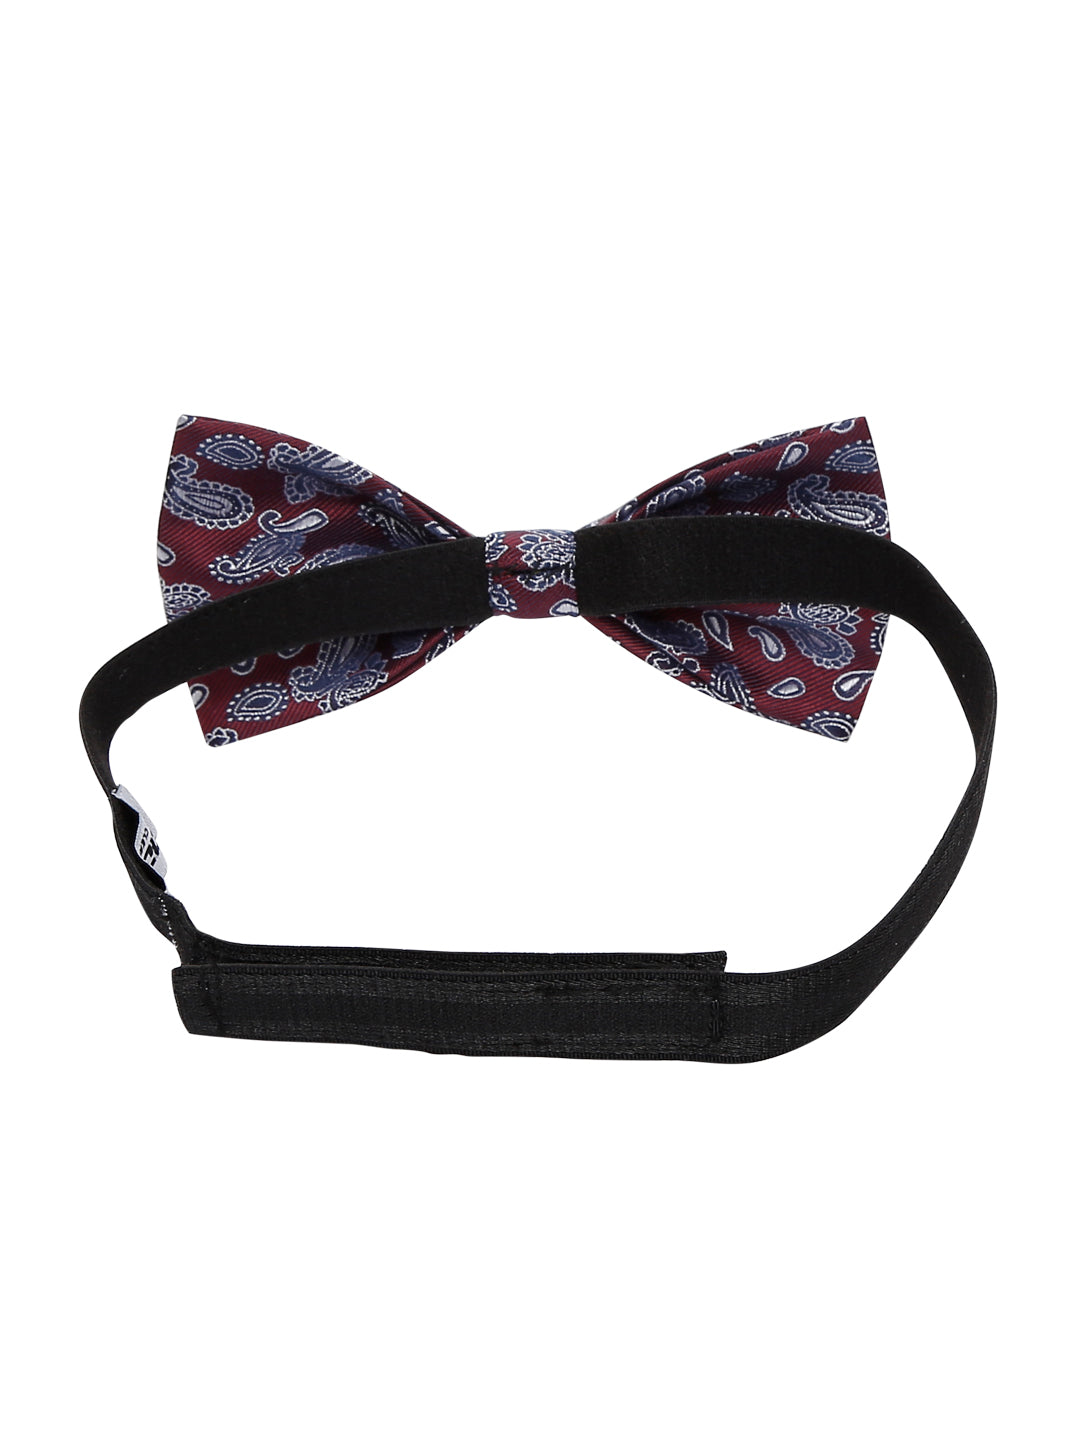 Zido Bow Tie for Men BJQ300